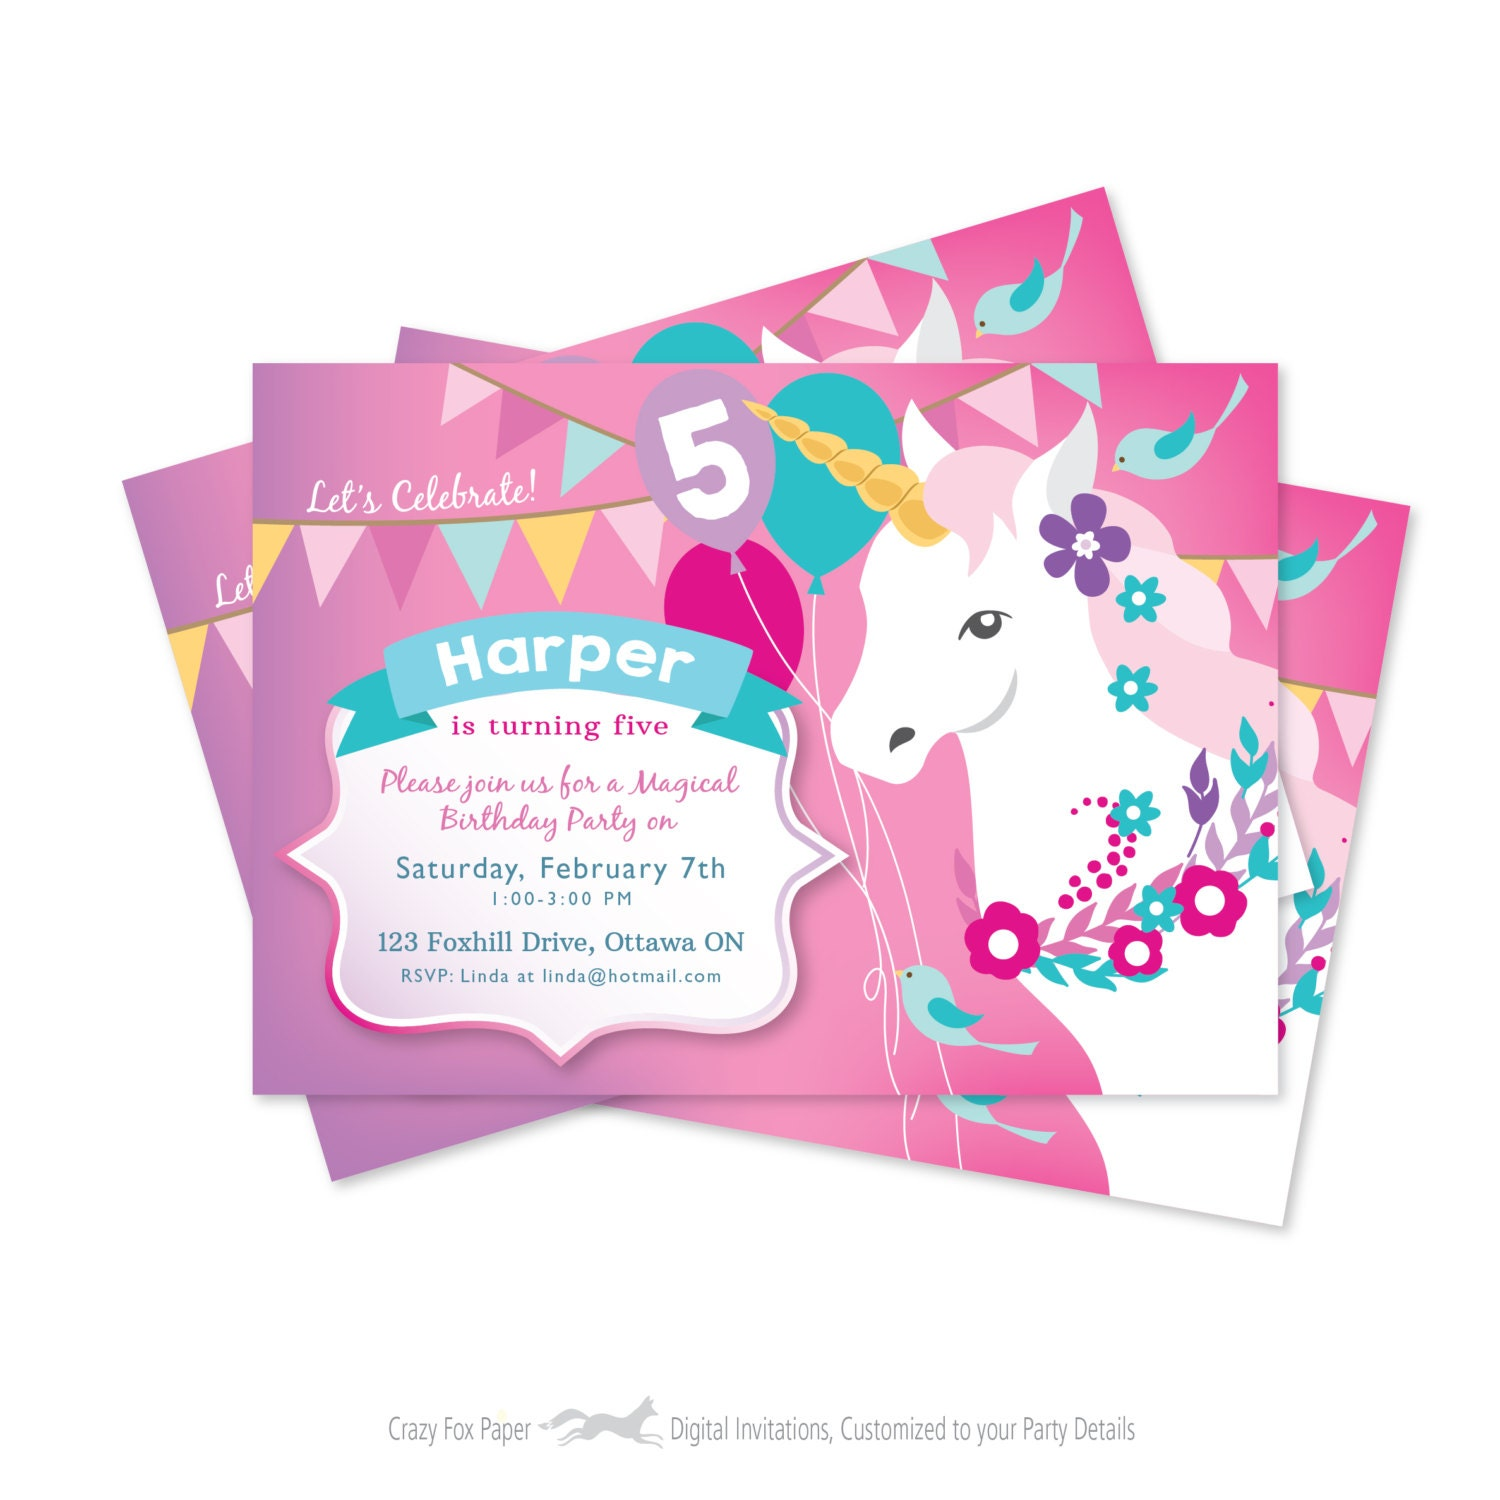 Whimsical Invitations with beautiful invitation example